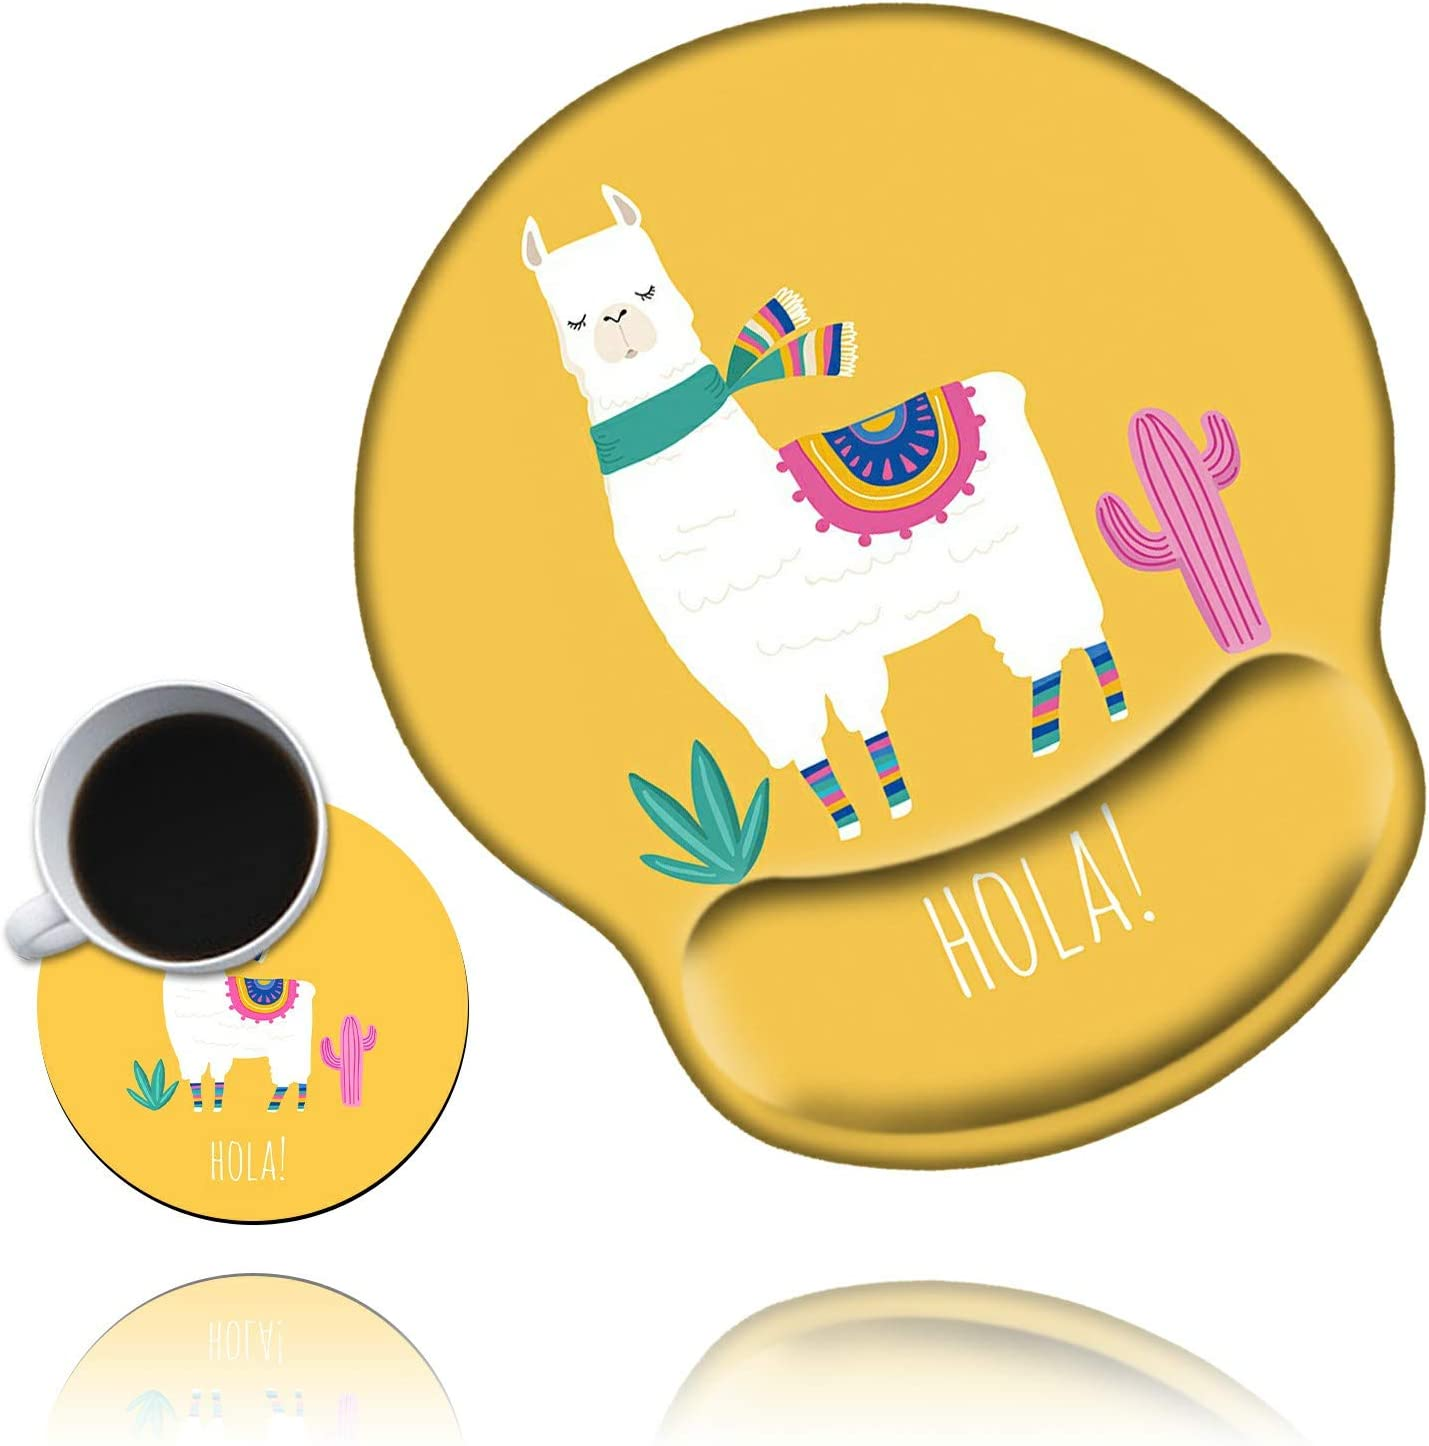 Ergonomic Mouse Pad with Wrist Support Gel Mouse Pad with Wrist Rest, Cute Gaming Mousepad Llama Yellow Design Smooth Surface Non Slip Base for Computer Laptop Mac Home Office with a Coasters